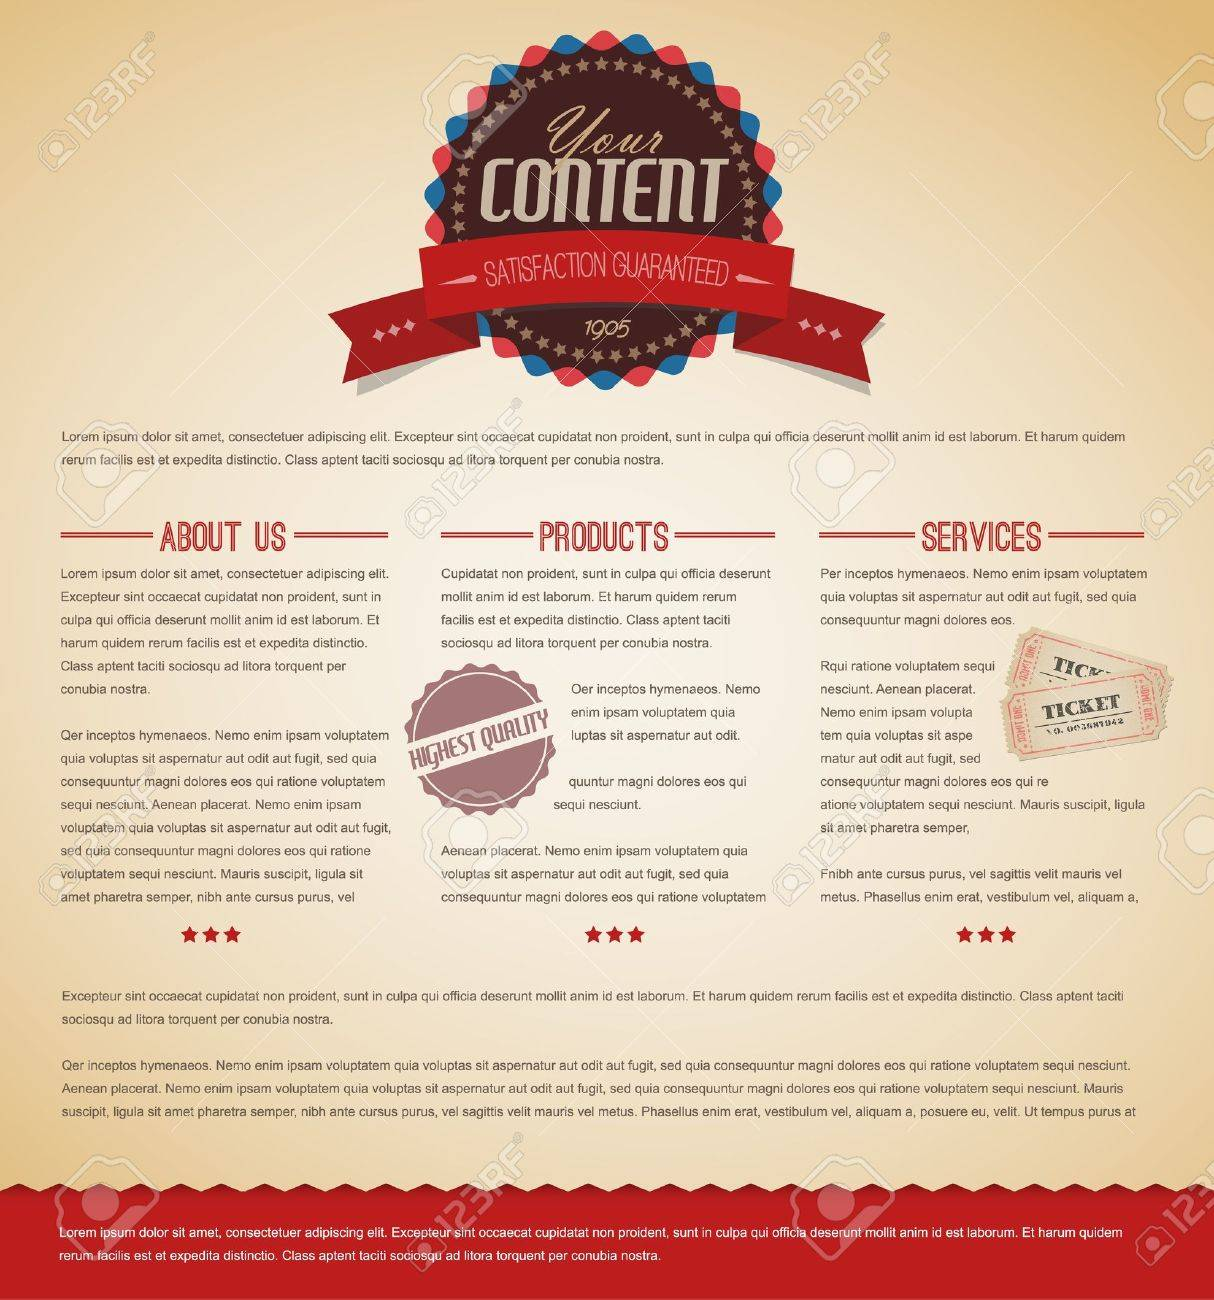 Retro vintage grunge web page template - red version Stock Vector - 12900192